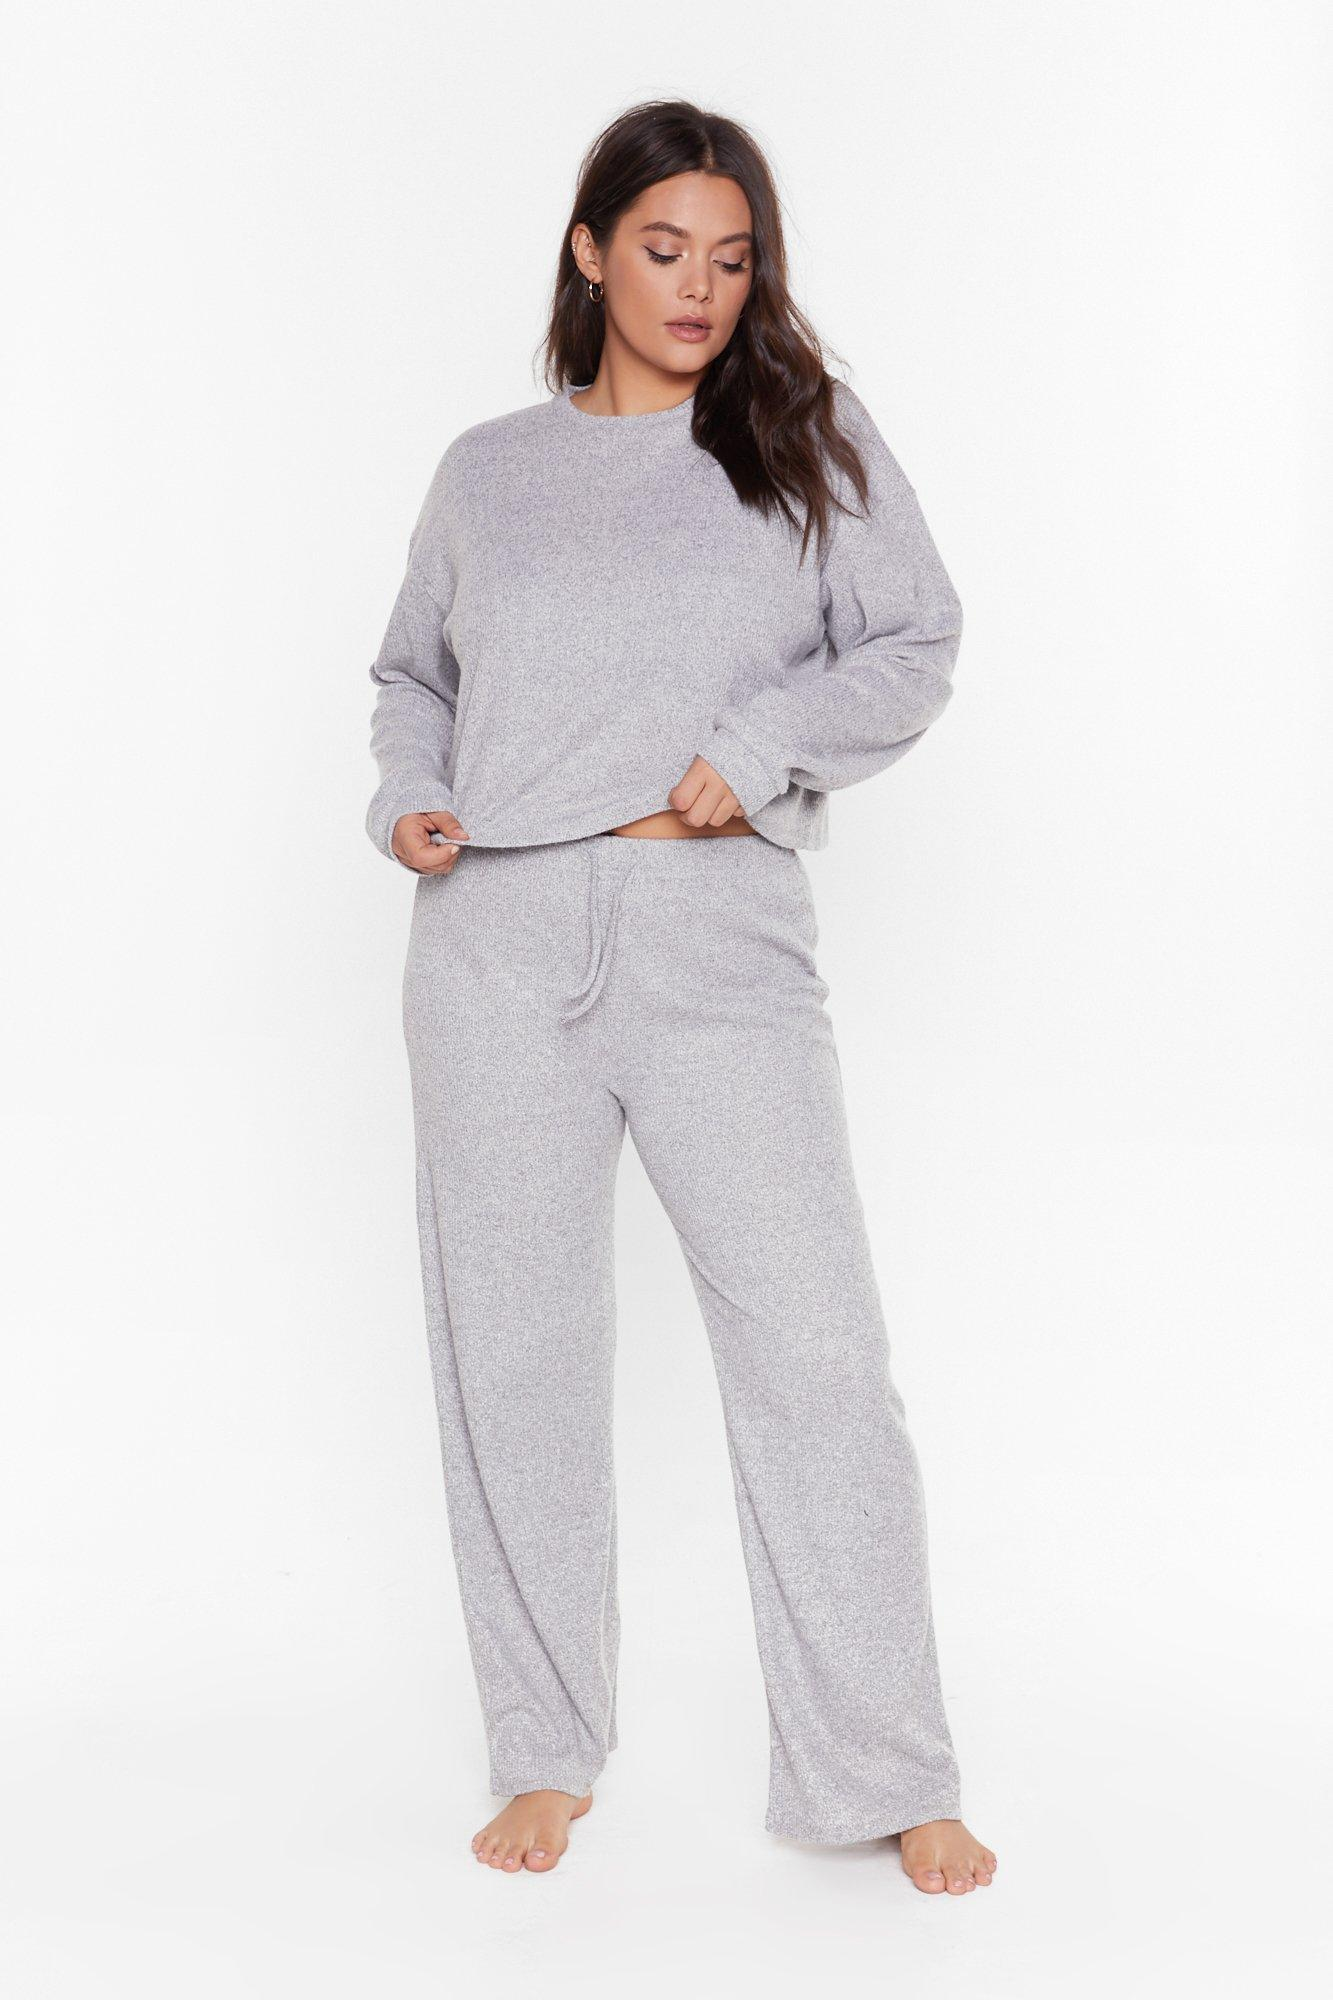 Image of Rib and Repeat Knit Plus Lounge Set